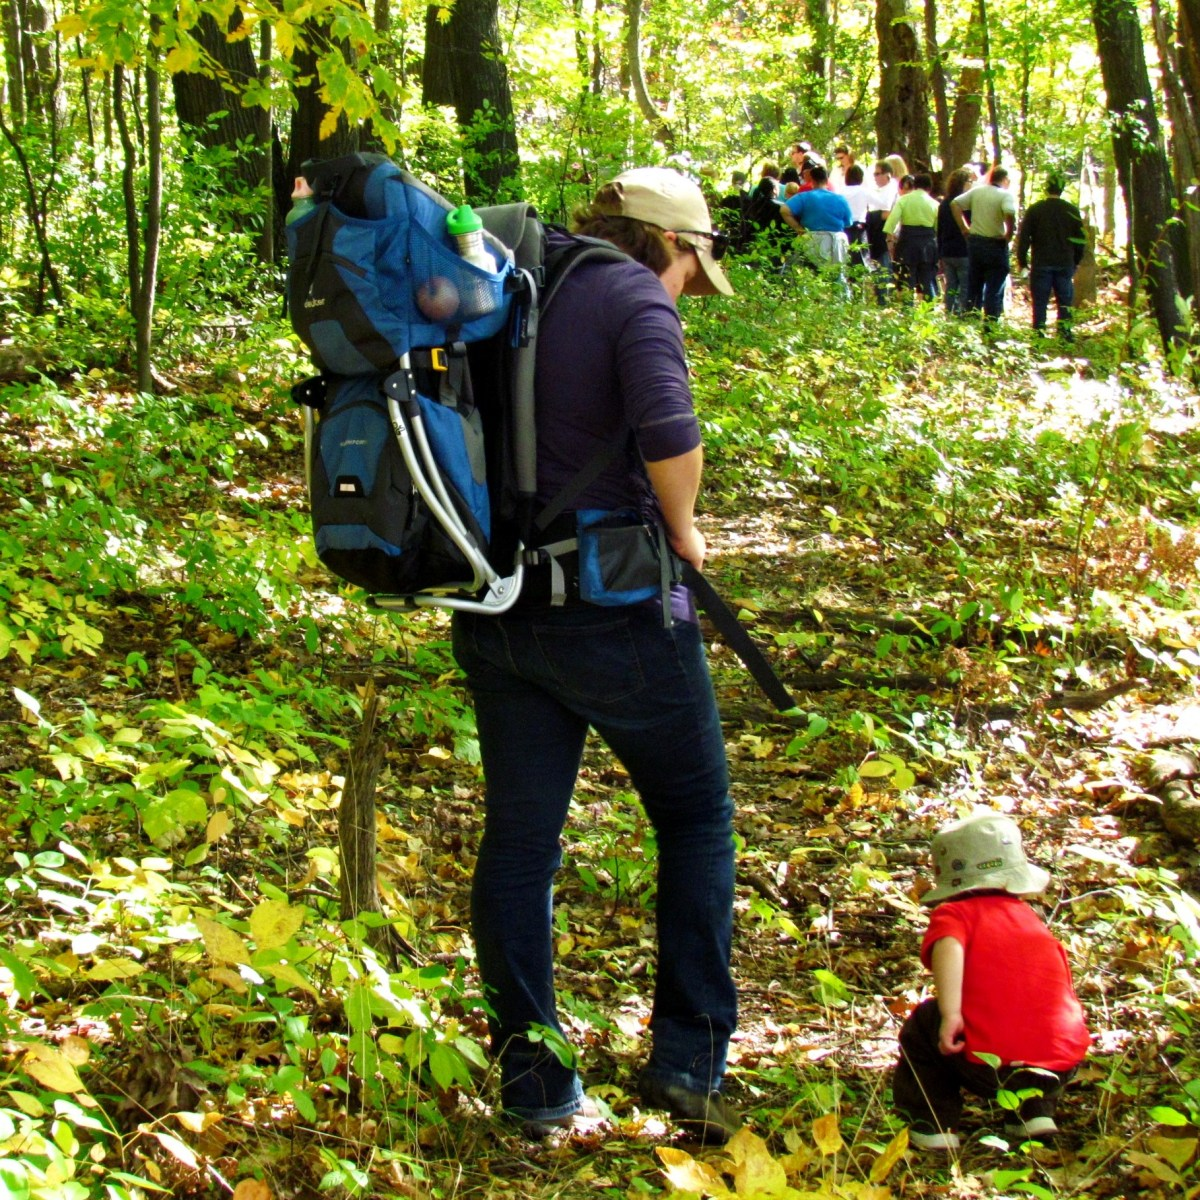 A woman wearing a hiking pack stands near a small child who has discovered something on the forest floor.